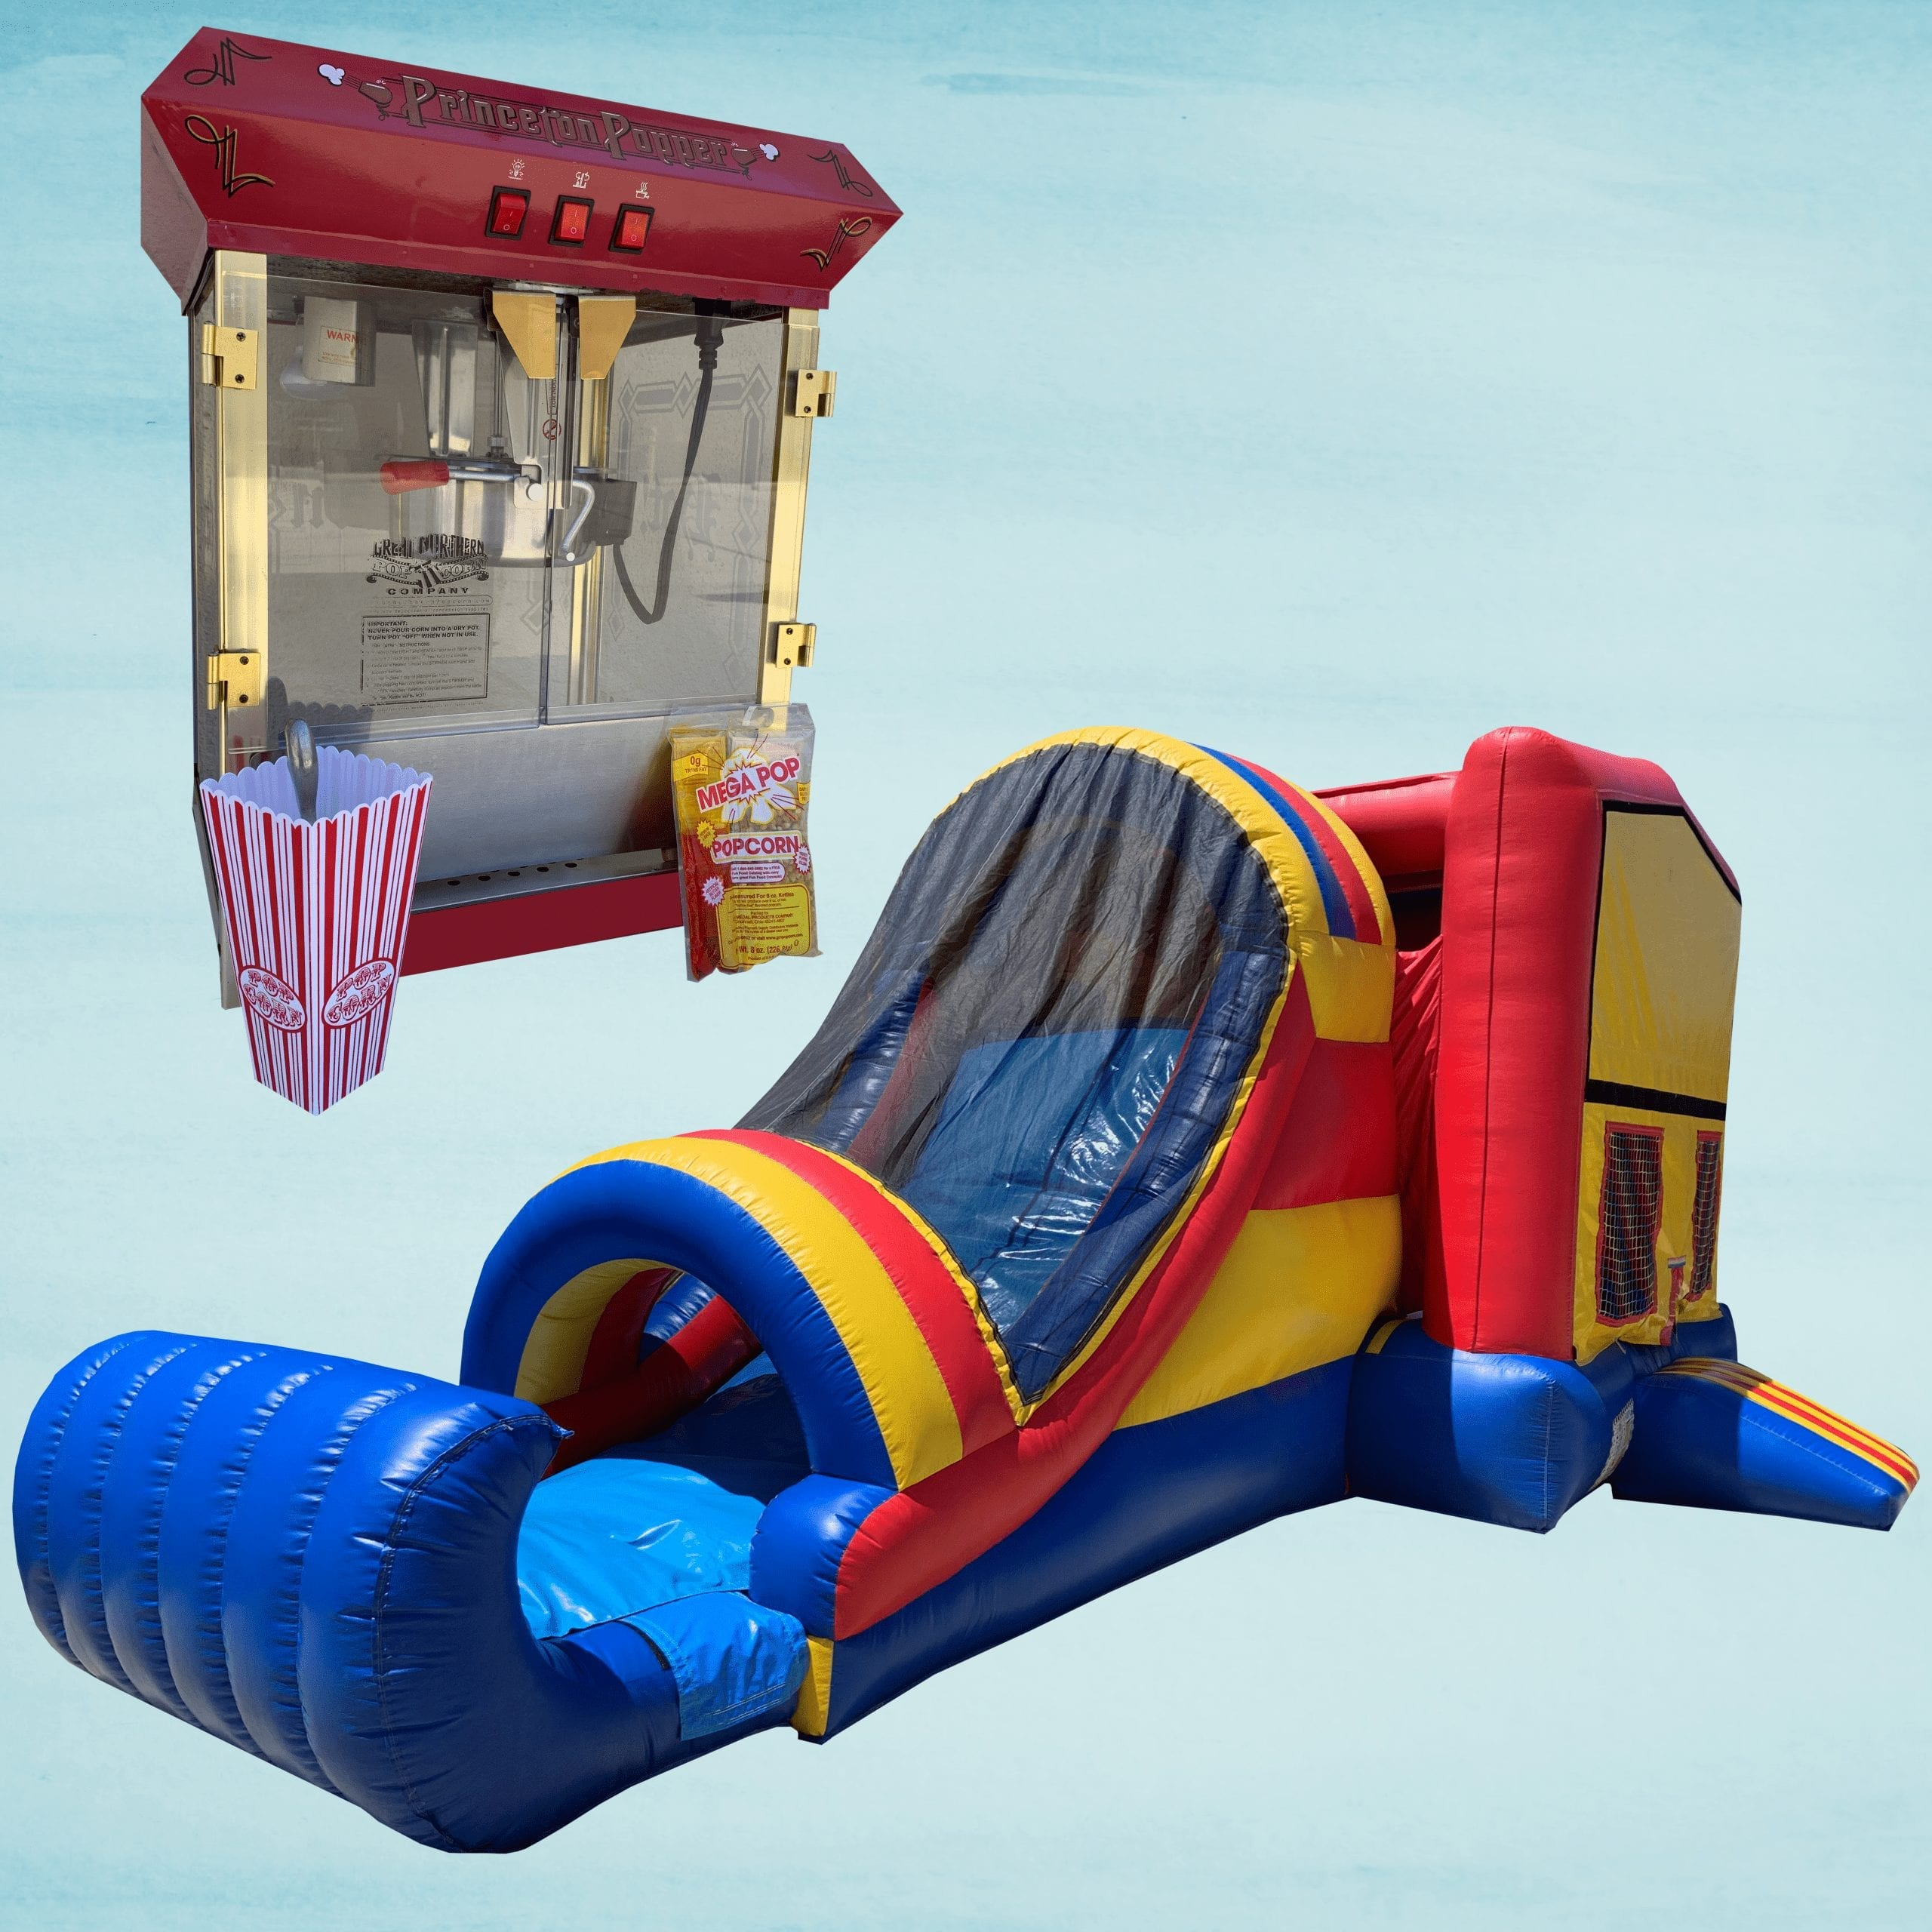 Pop Corn Machine & Bounce N' Slide